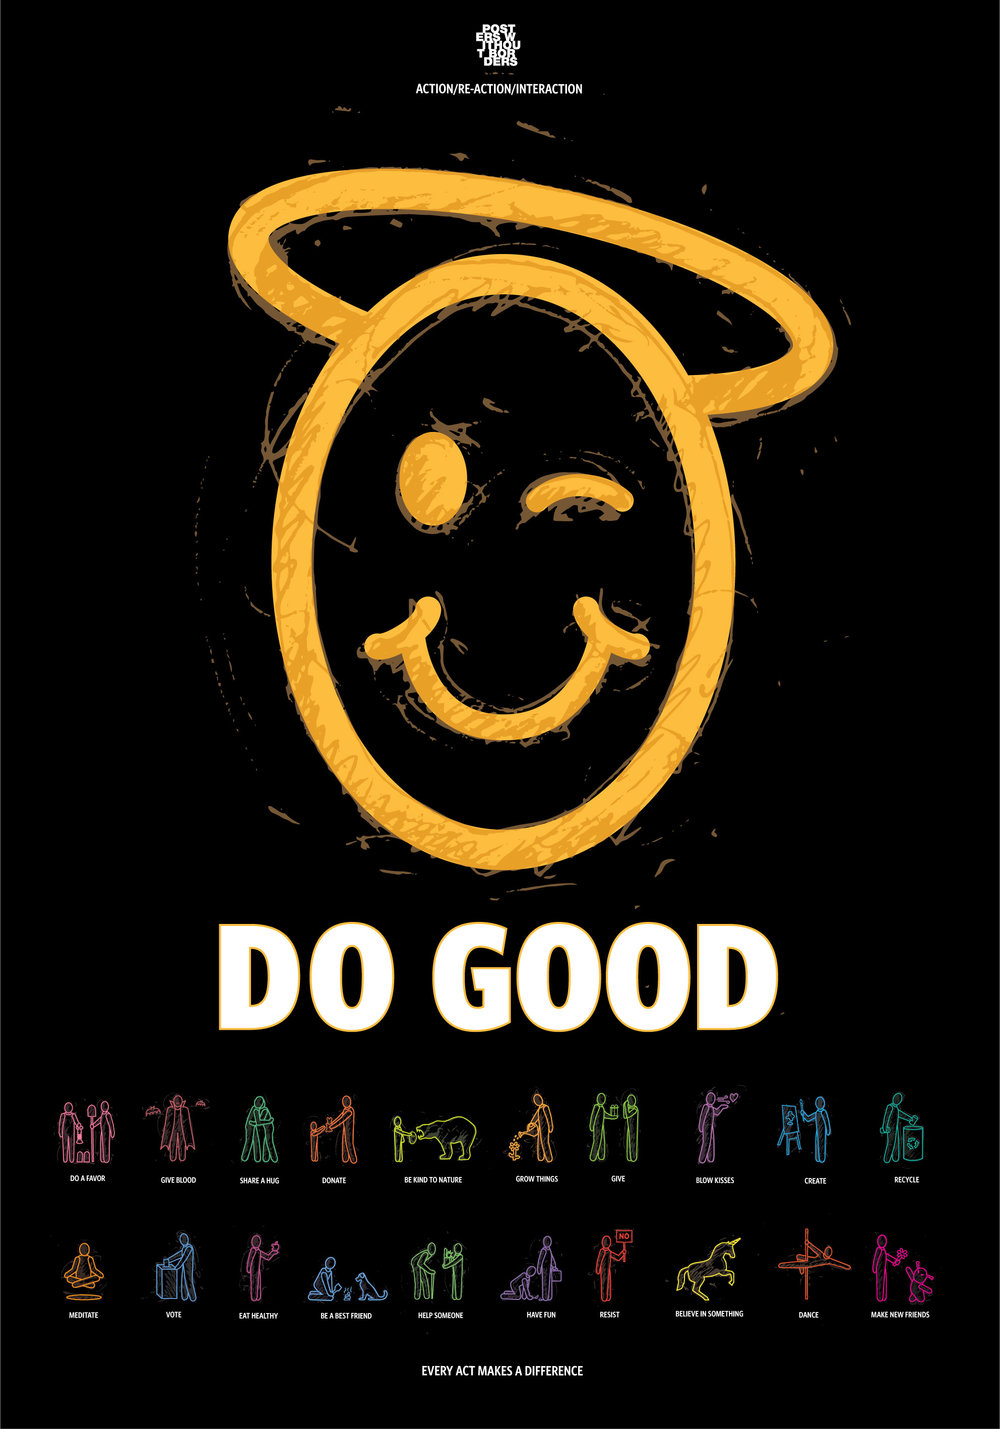 Do Good. A poster for an invitational exhibition called Action. Reaction. Interaction.